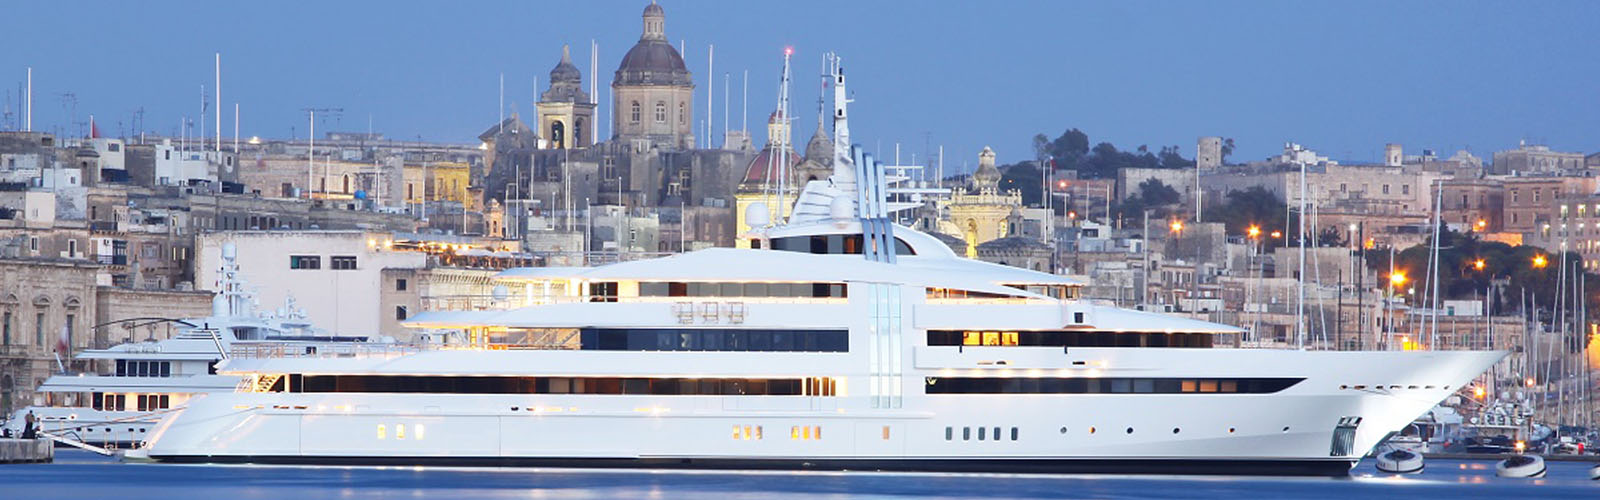 A white superyacht in port